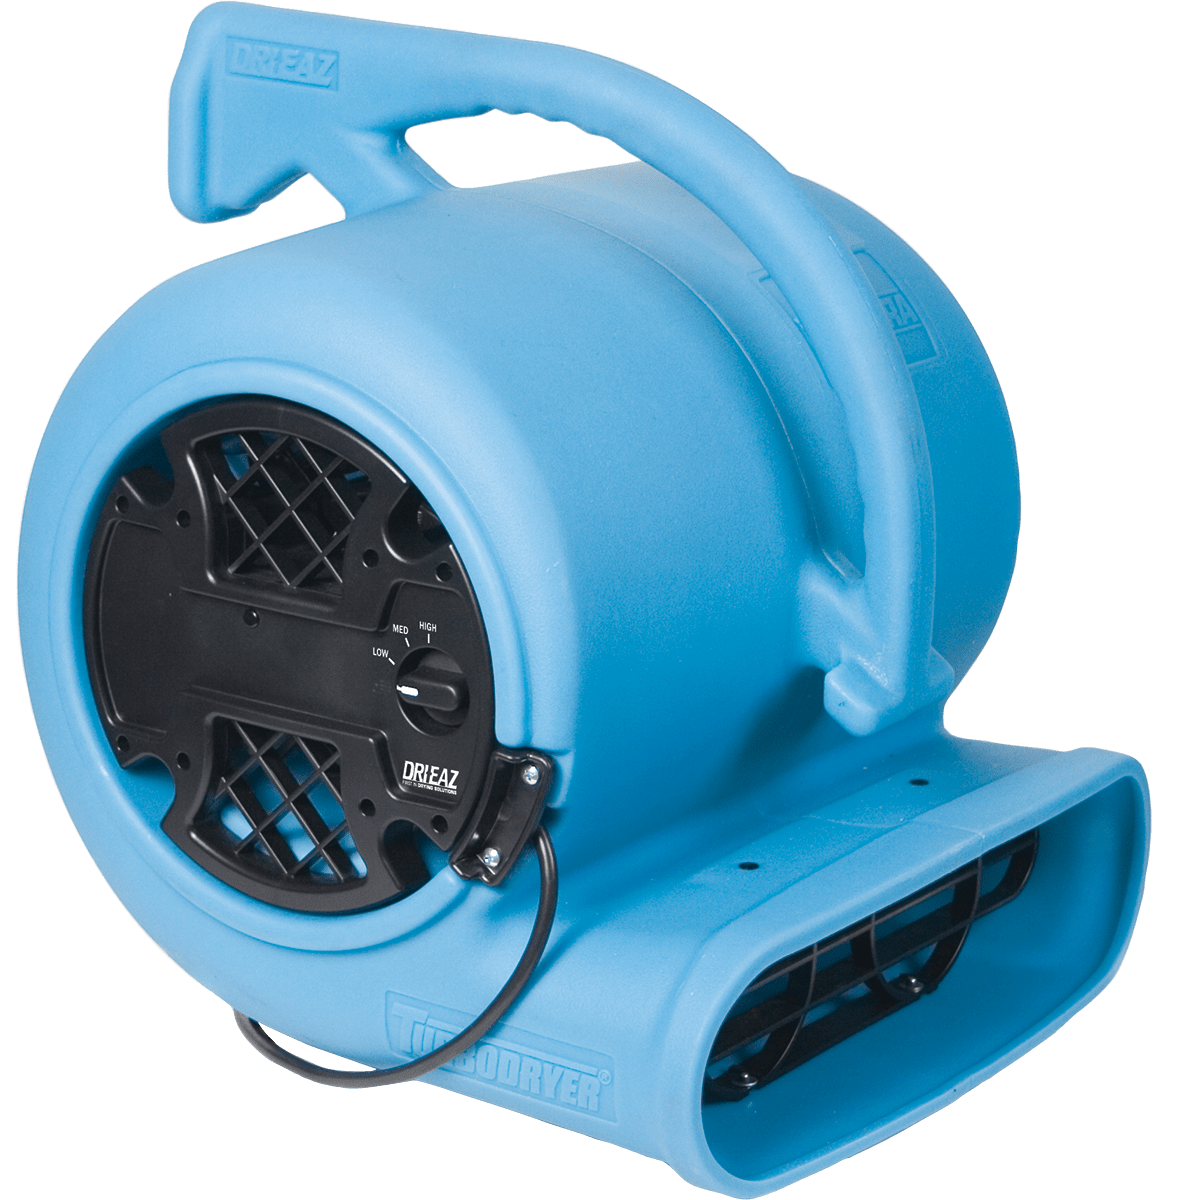 Dri Eaz Sahara Hd Turbodryer F352 Air Mover Sylvane